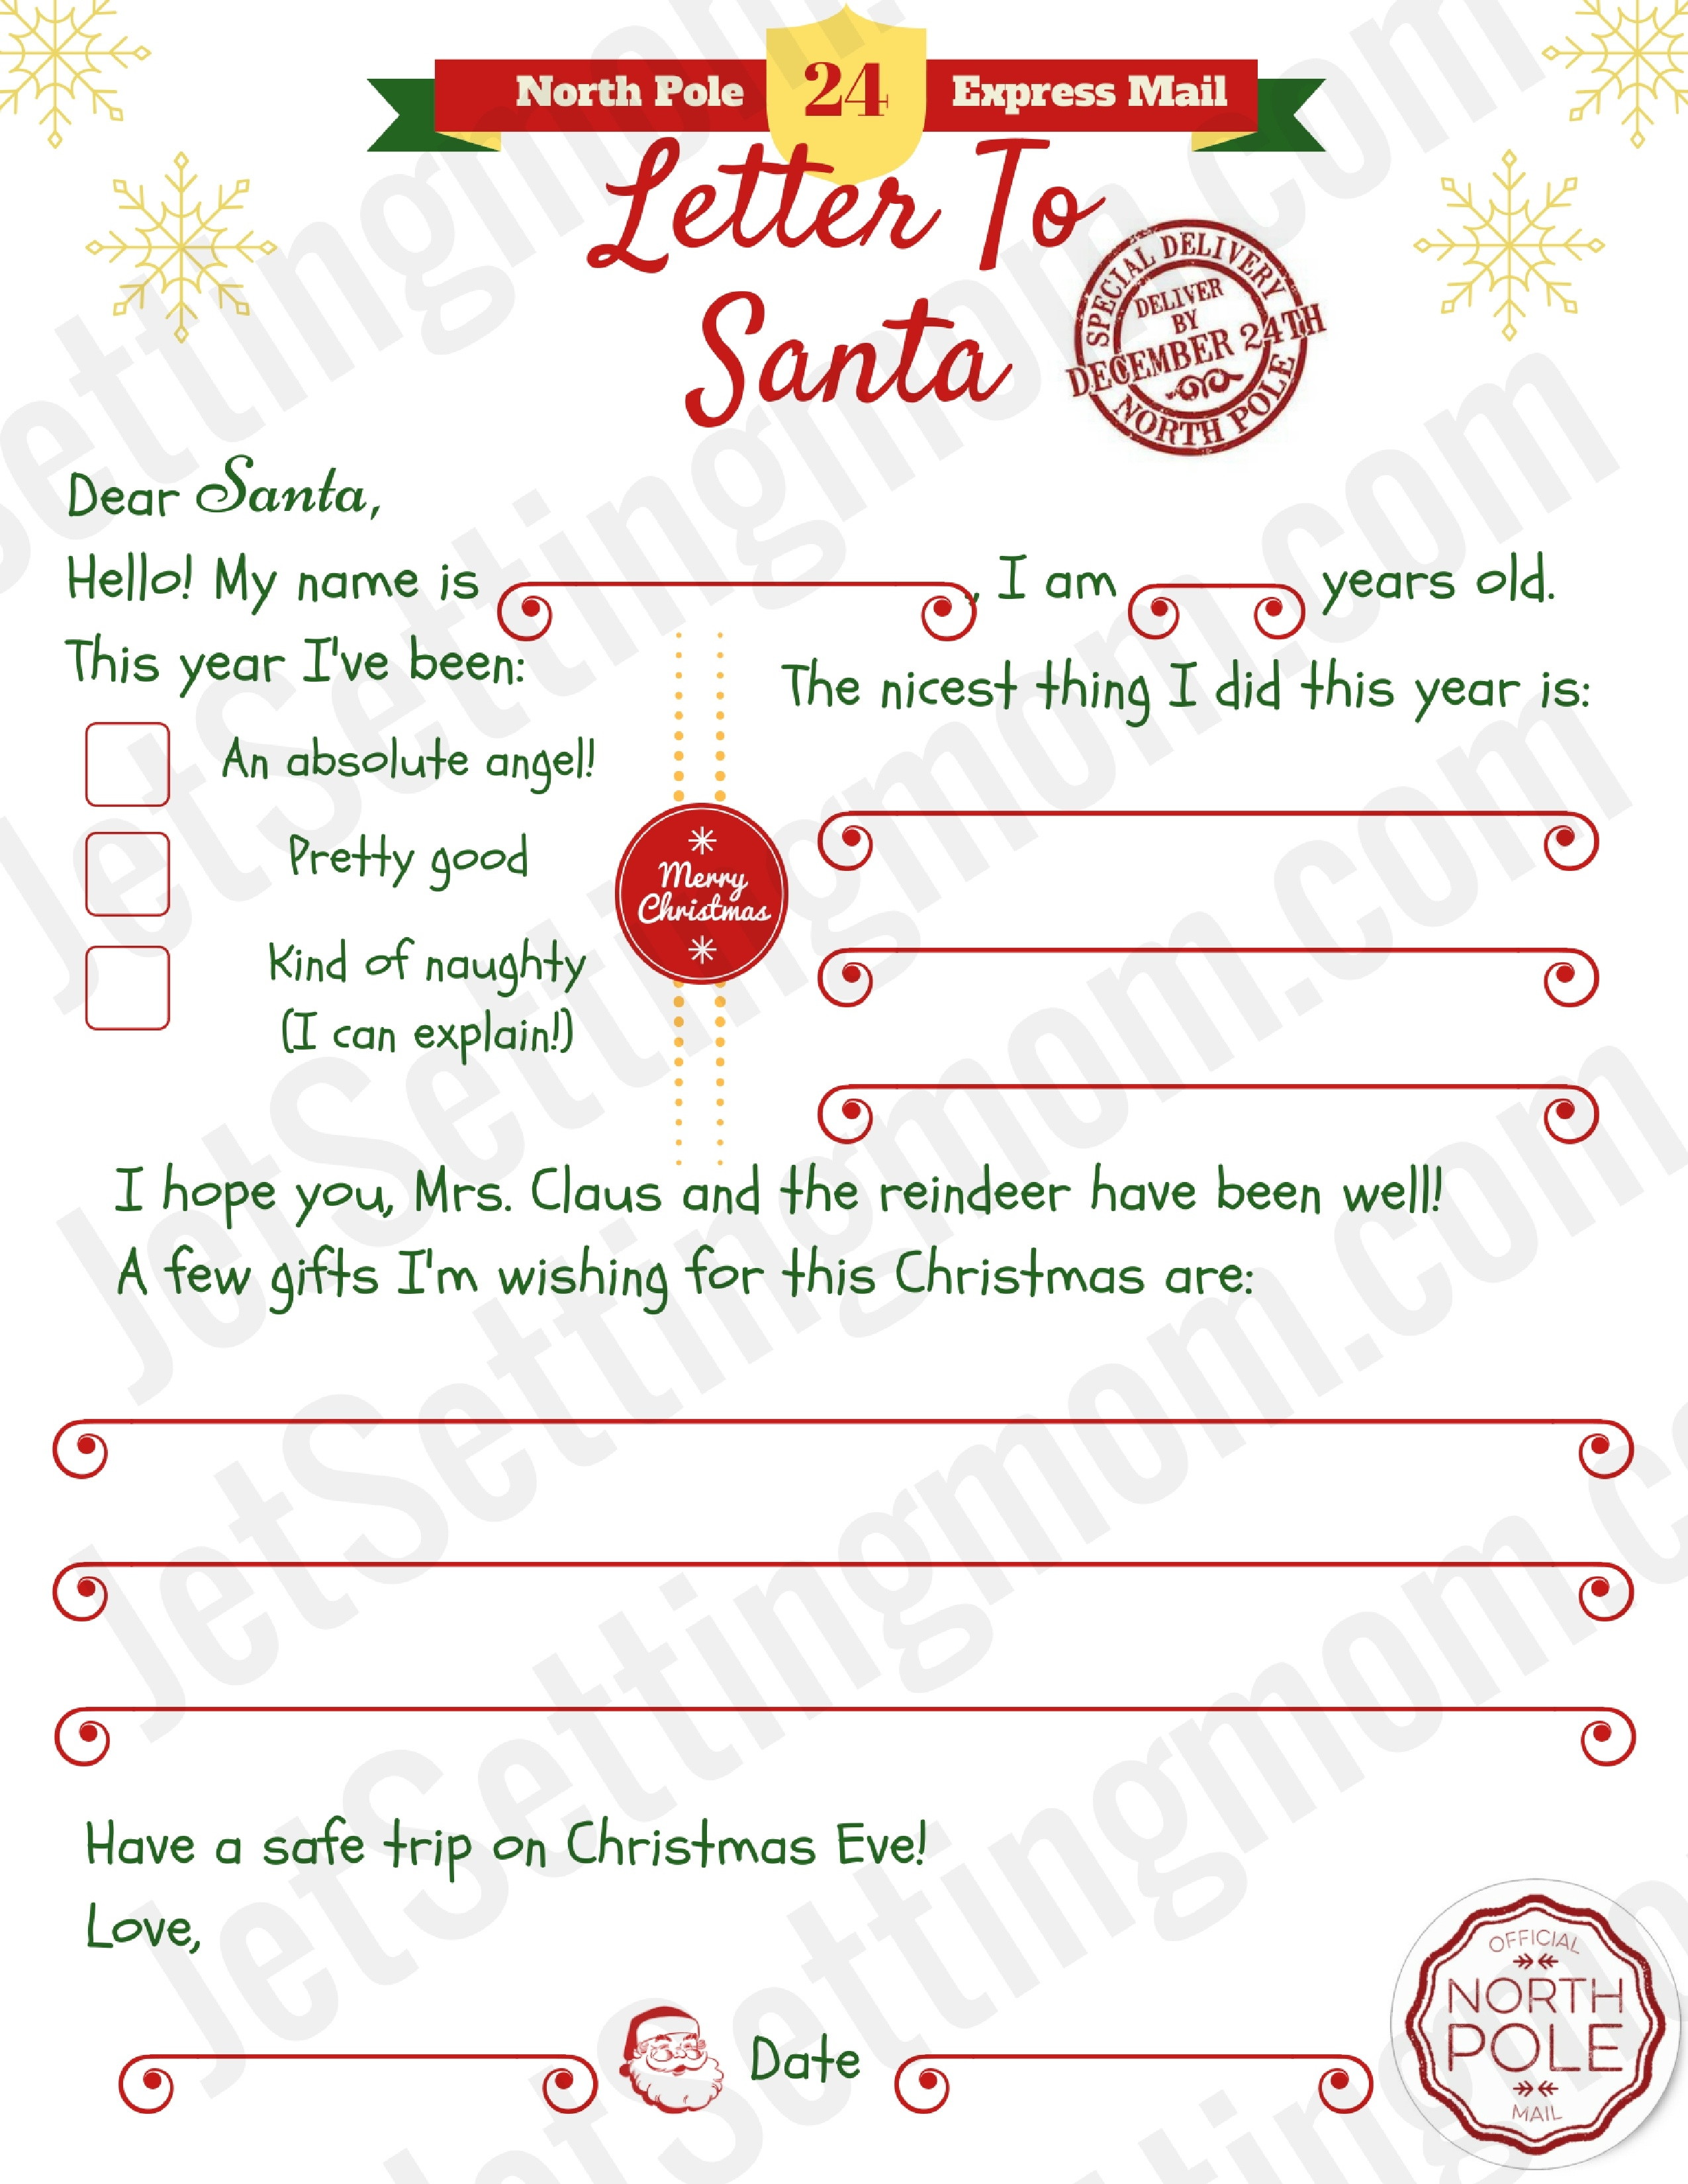 Free Printable Letter To Santa Template - Writing To Santa Made Easy! - Free Printable Letter From Santa Template